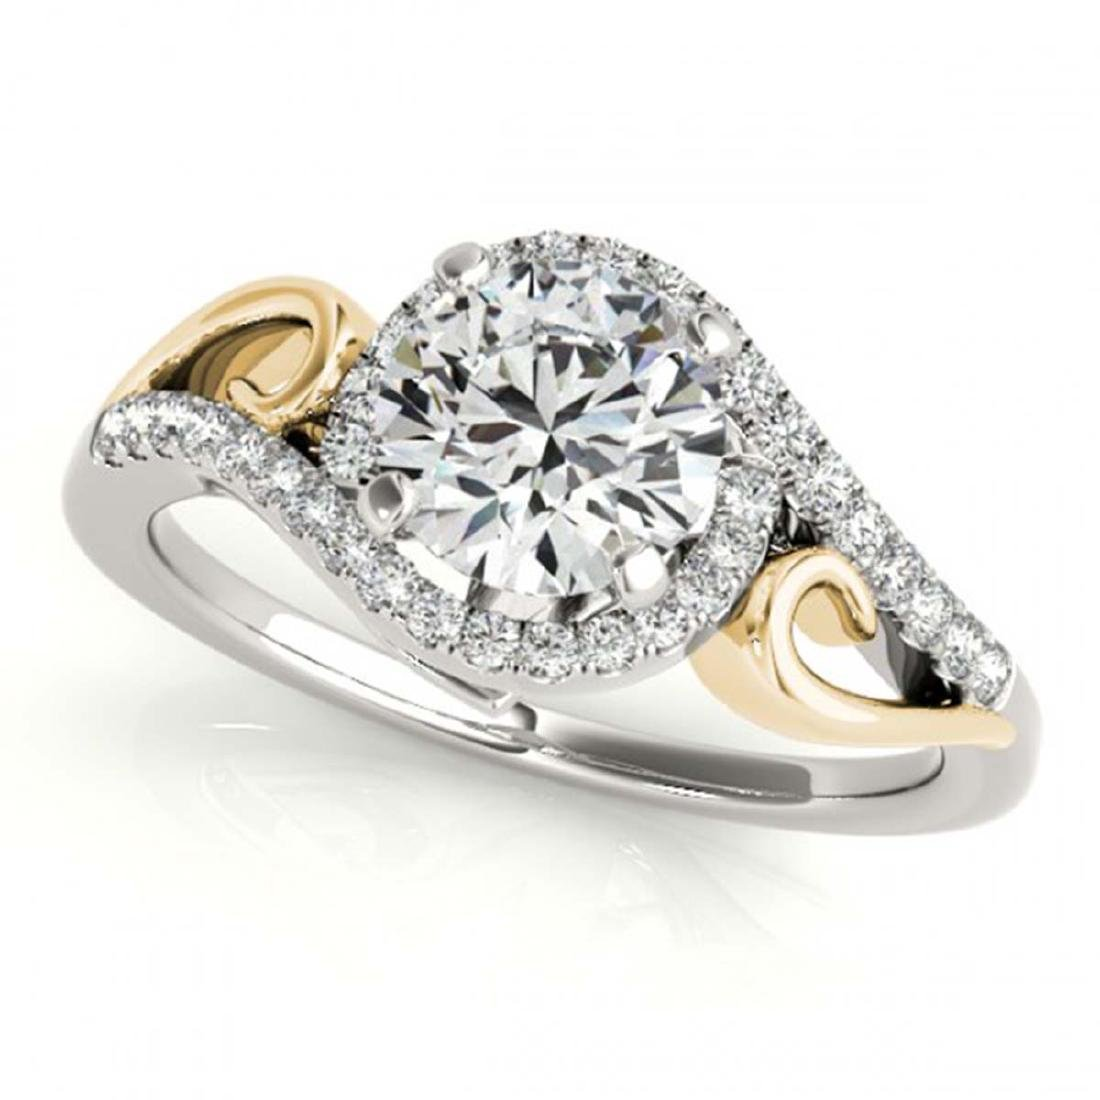 1 ctw VS/SI Diamond Solitaire Halo Ring 18K White &